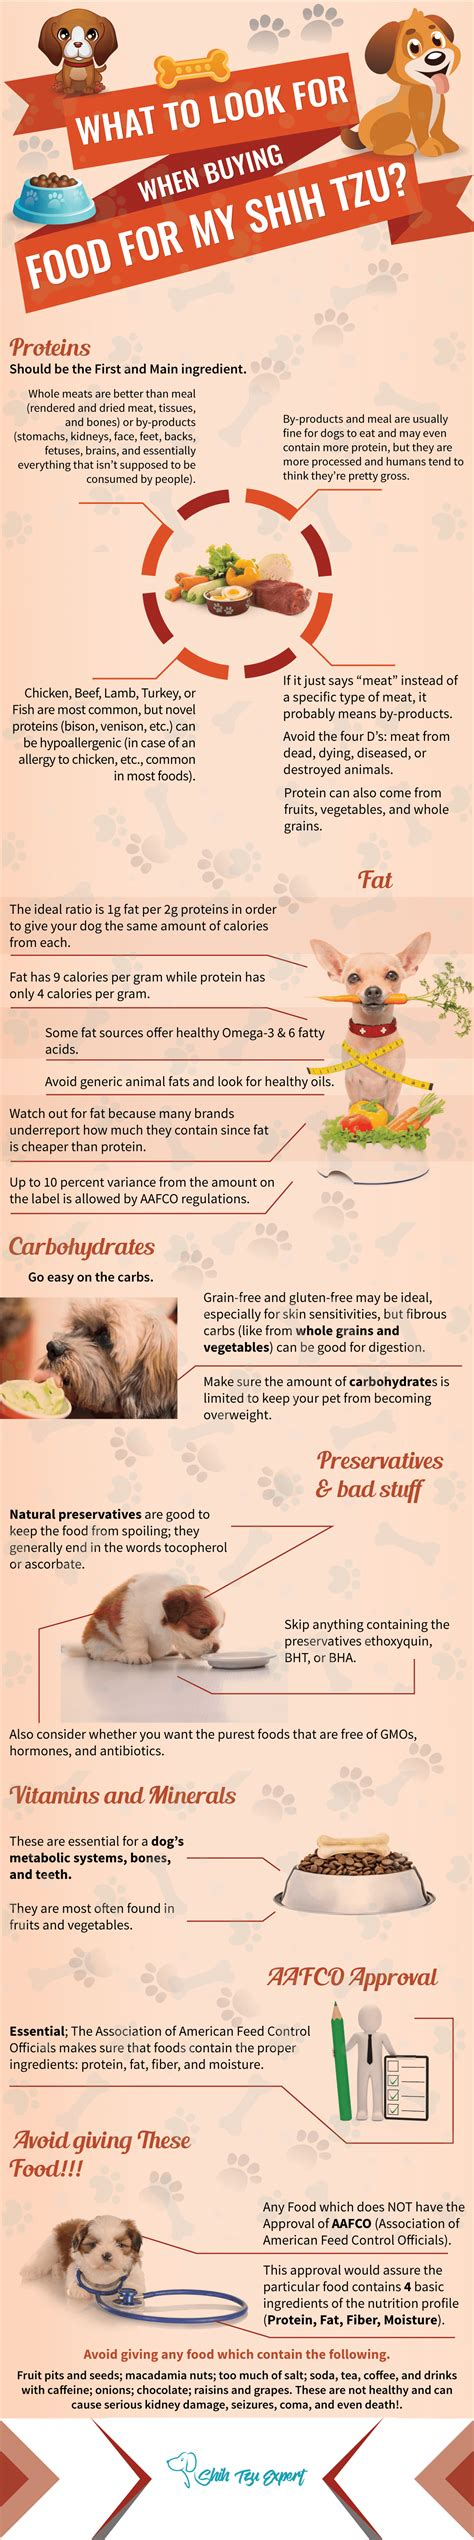 best food for shih tzu how to find the best food for shih tzu